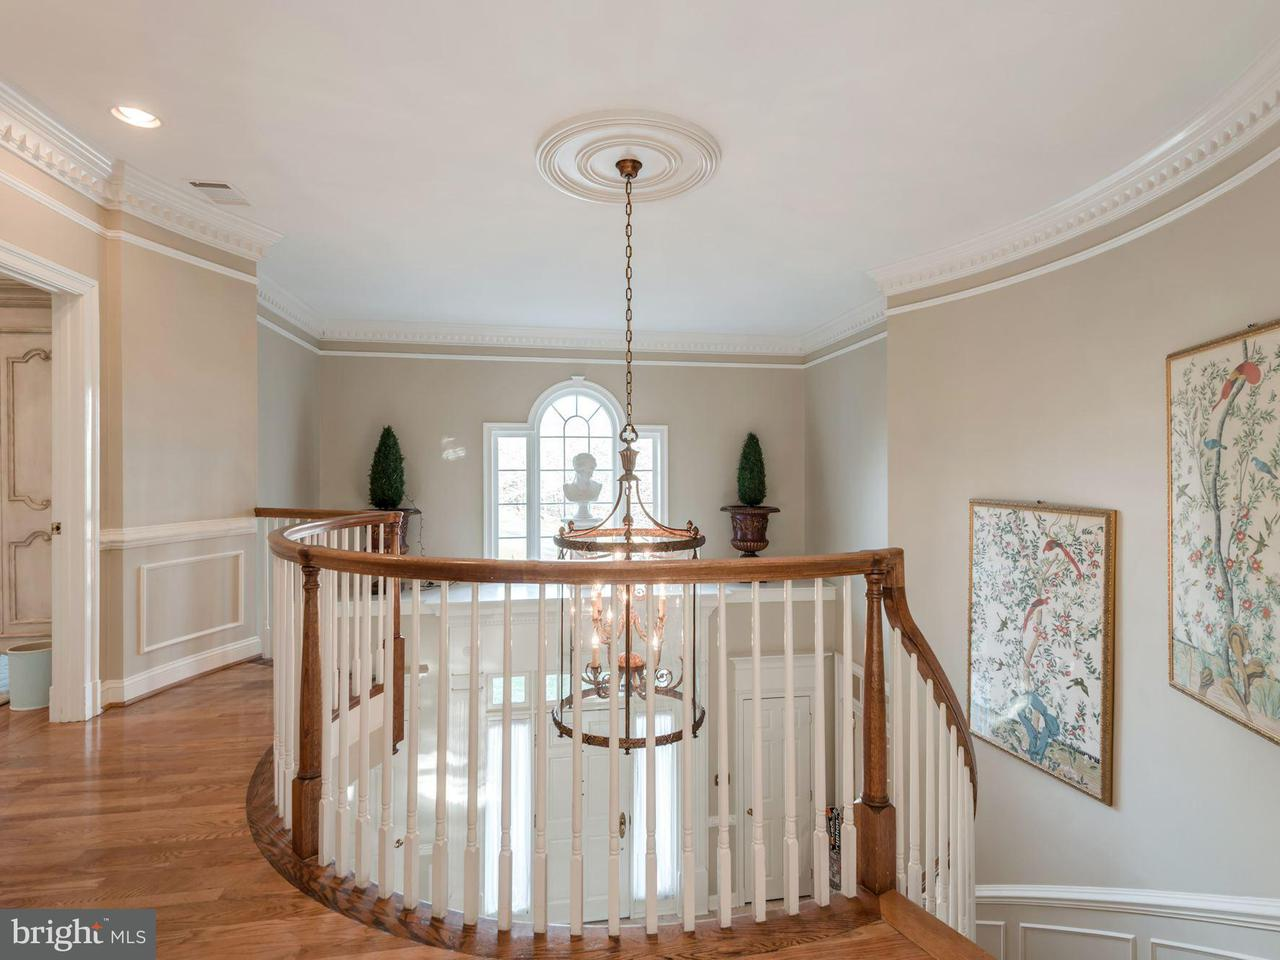 Additional photo for property listing at 9400 CRIMSON LEAF TER 9400 CRIMSON LEAF TER Rockville, Maryland 20854 United States